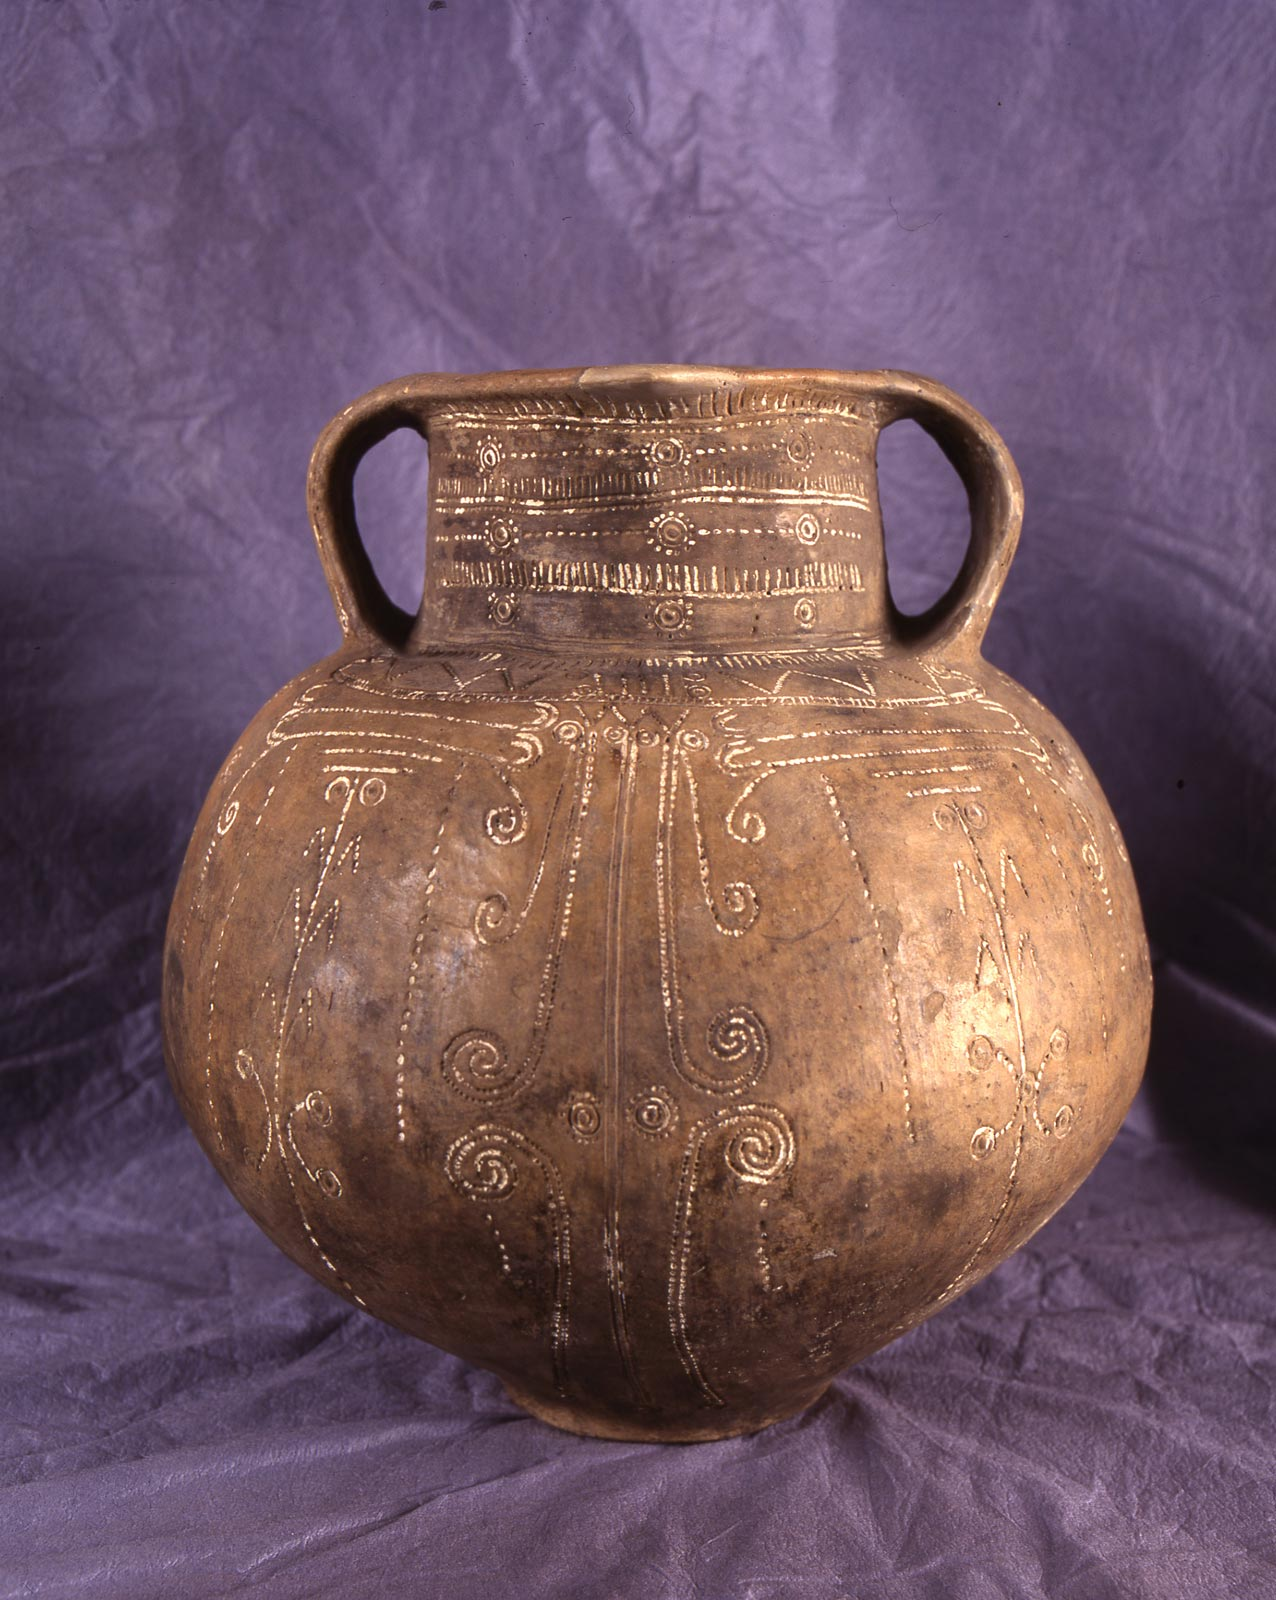 Prehistoric Urn from the Bronze Age